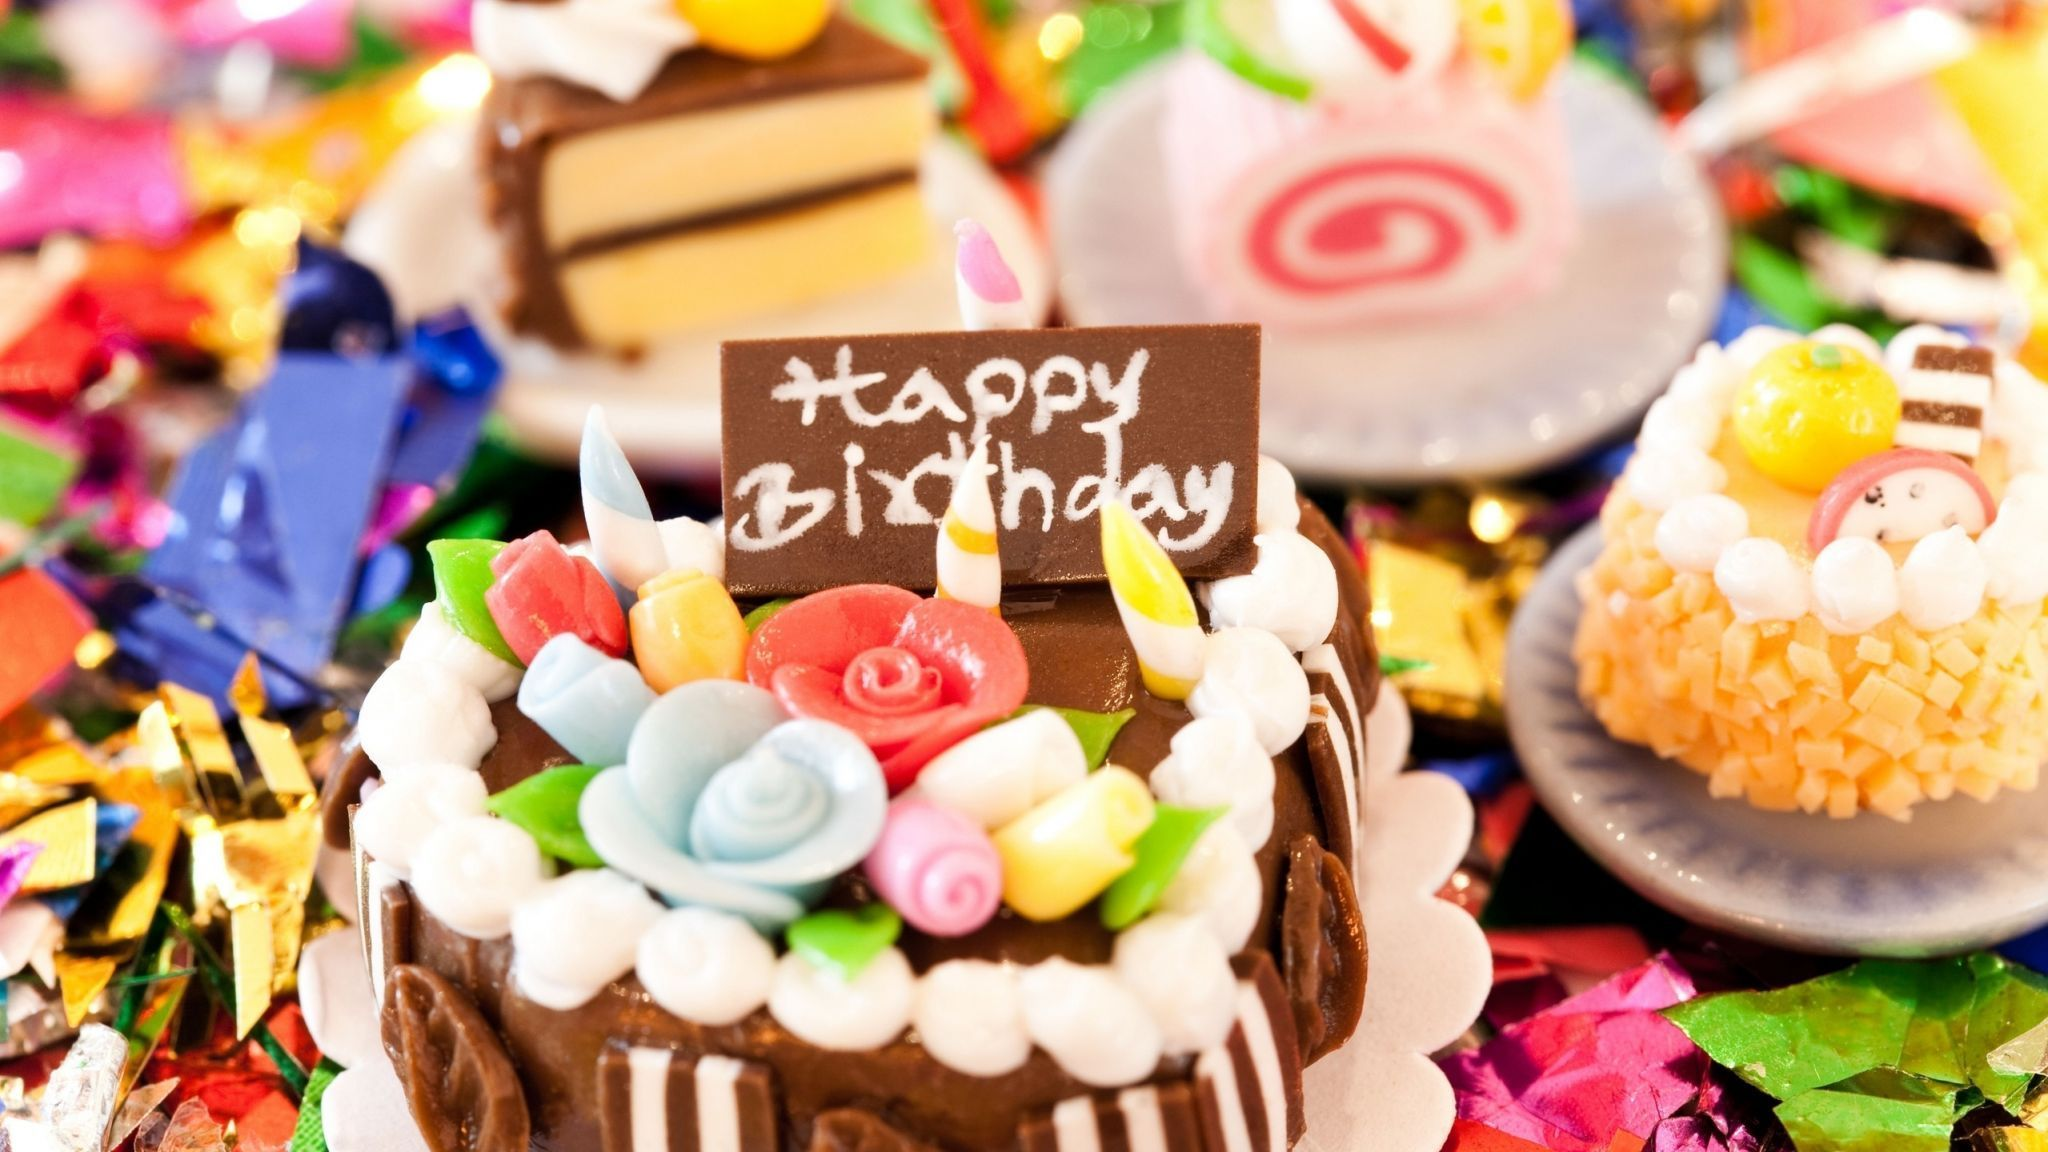 Hd wallpaper birthday - Find This Pin And More On Wallpapers Happy Birthday Cake Pictures Hd